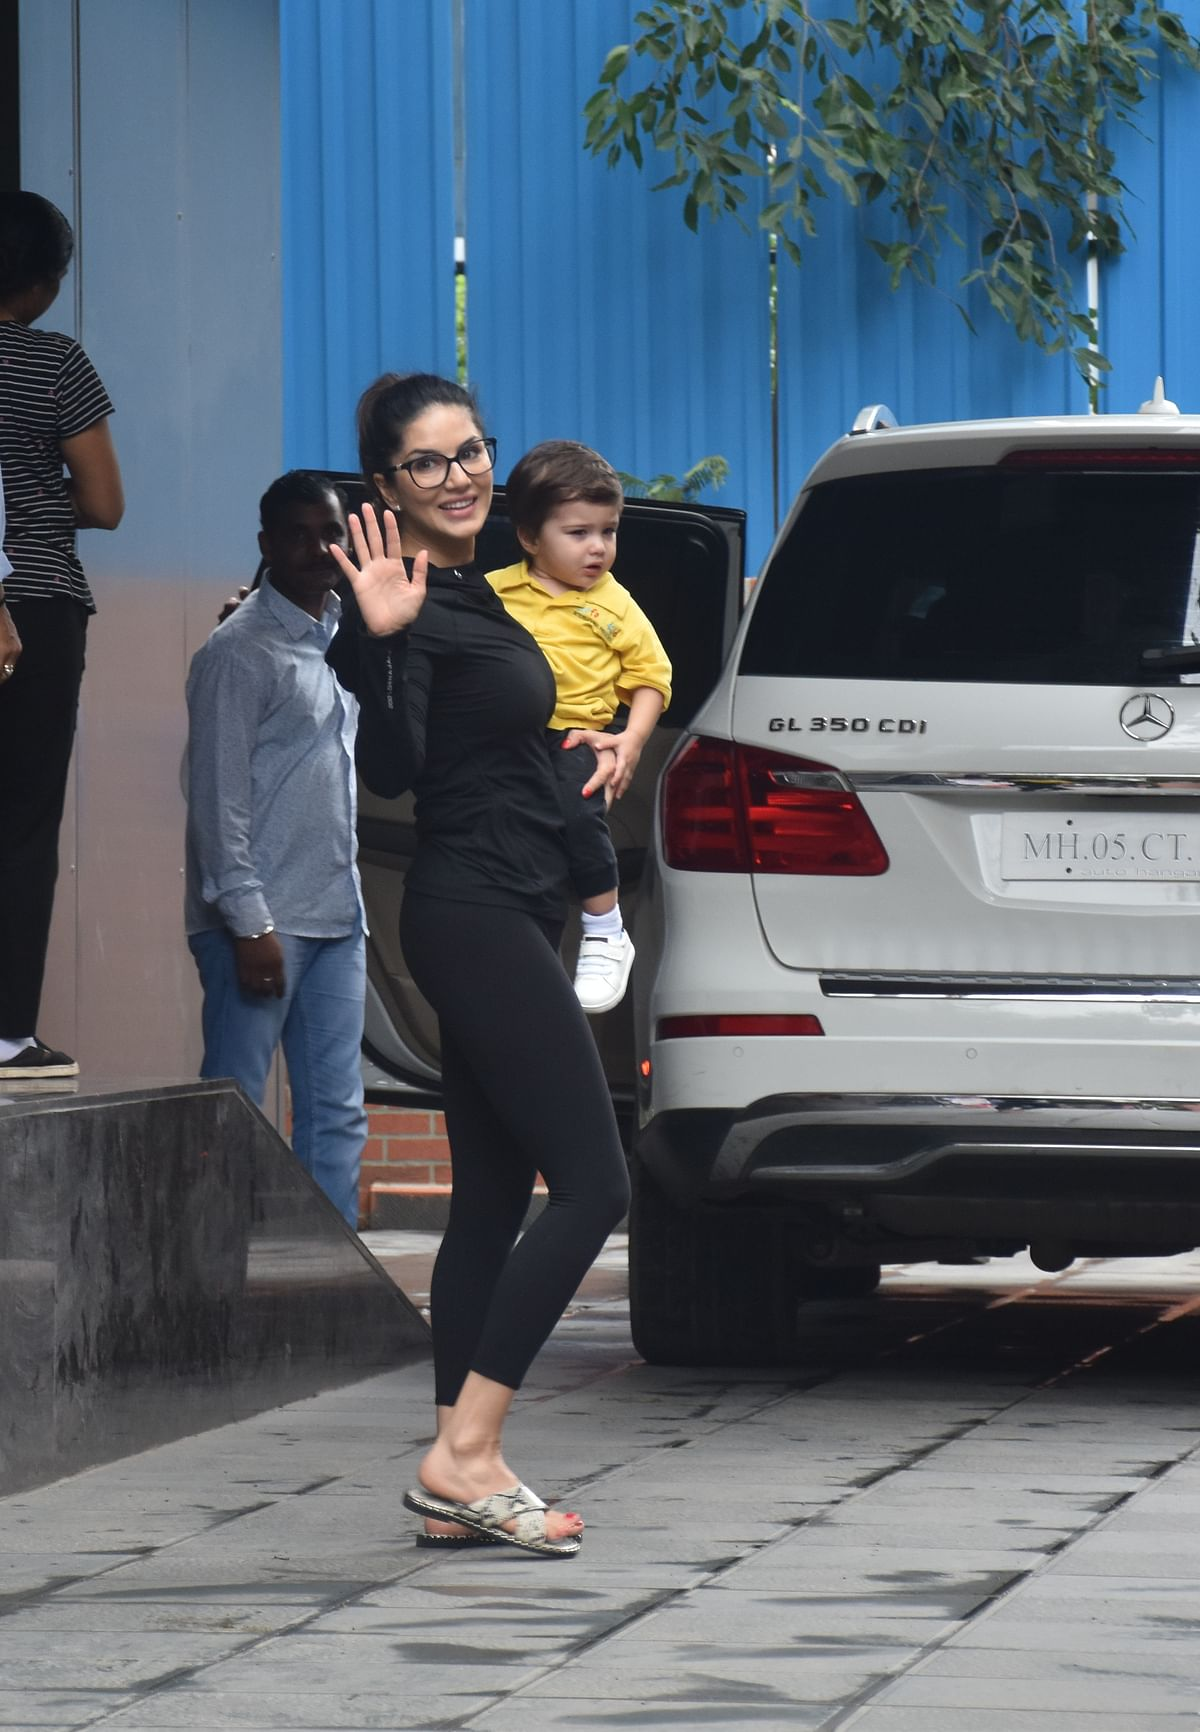 Sunny leone spotted with her kids at school in the city.